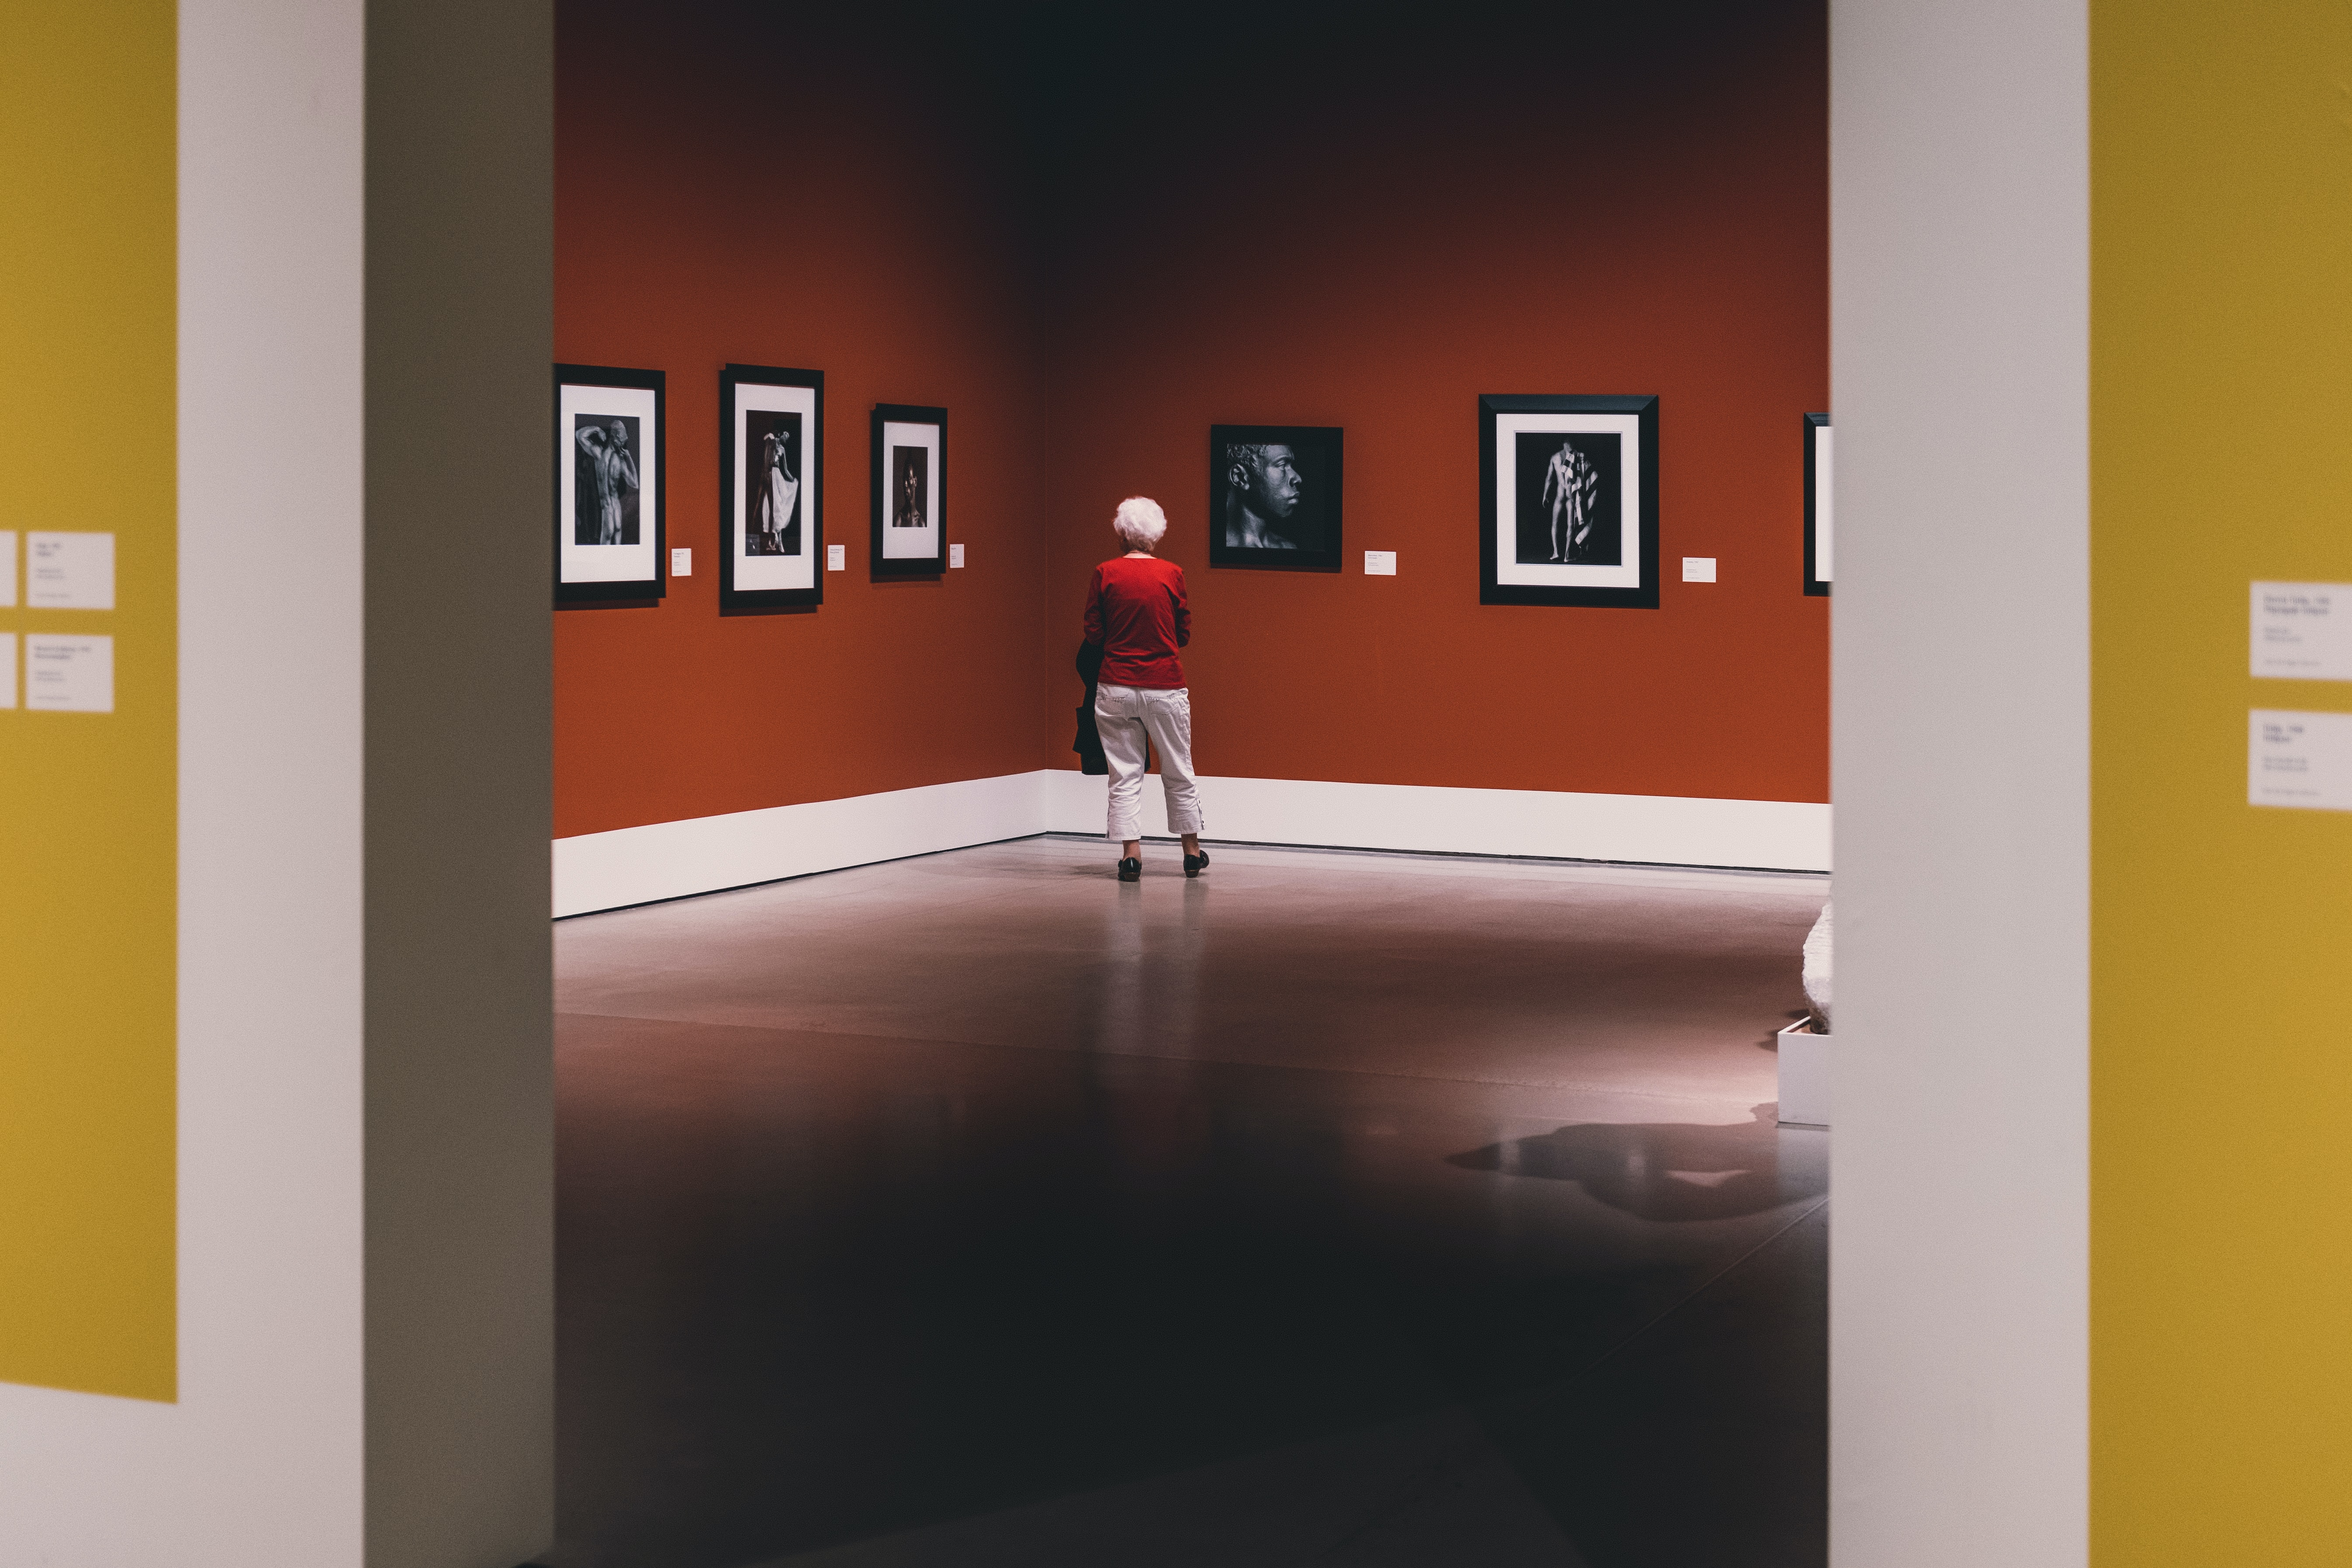 Older person in red jumper viewing artwork in gallery with marble floor and reflection